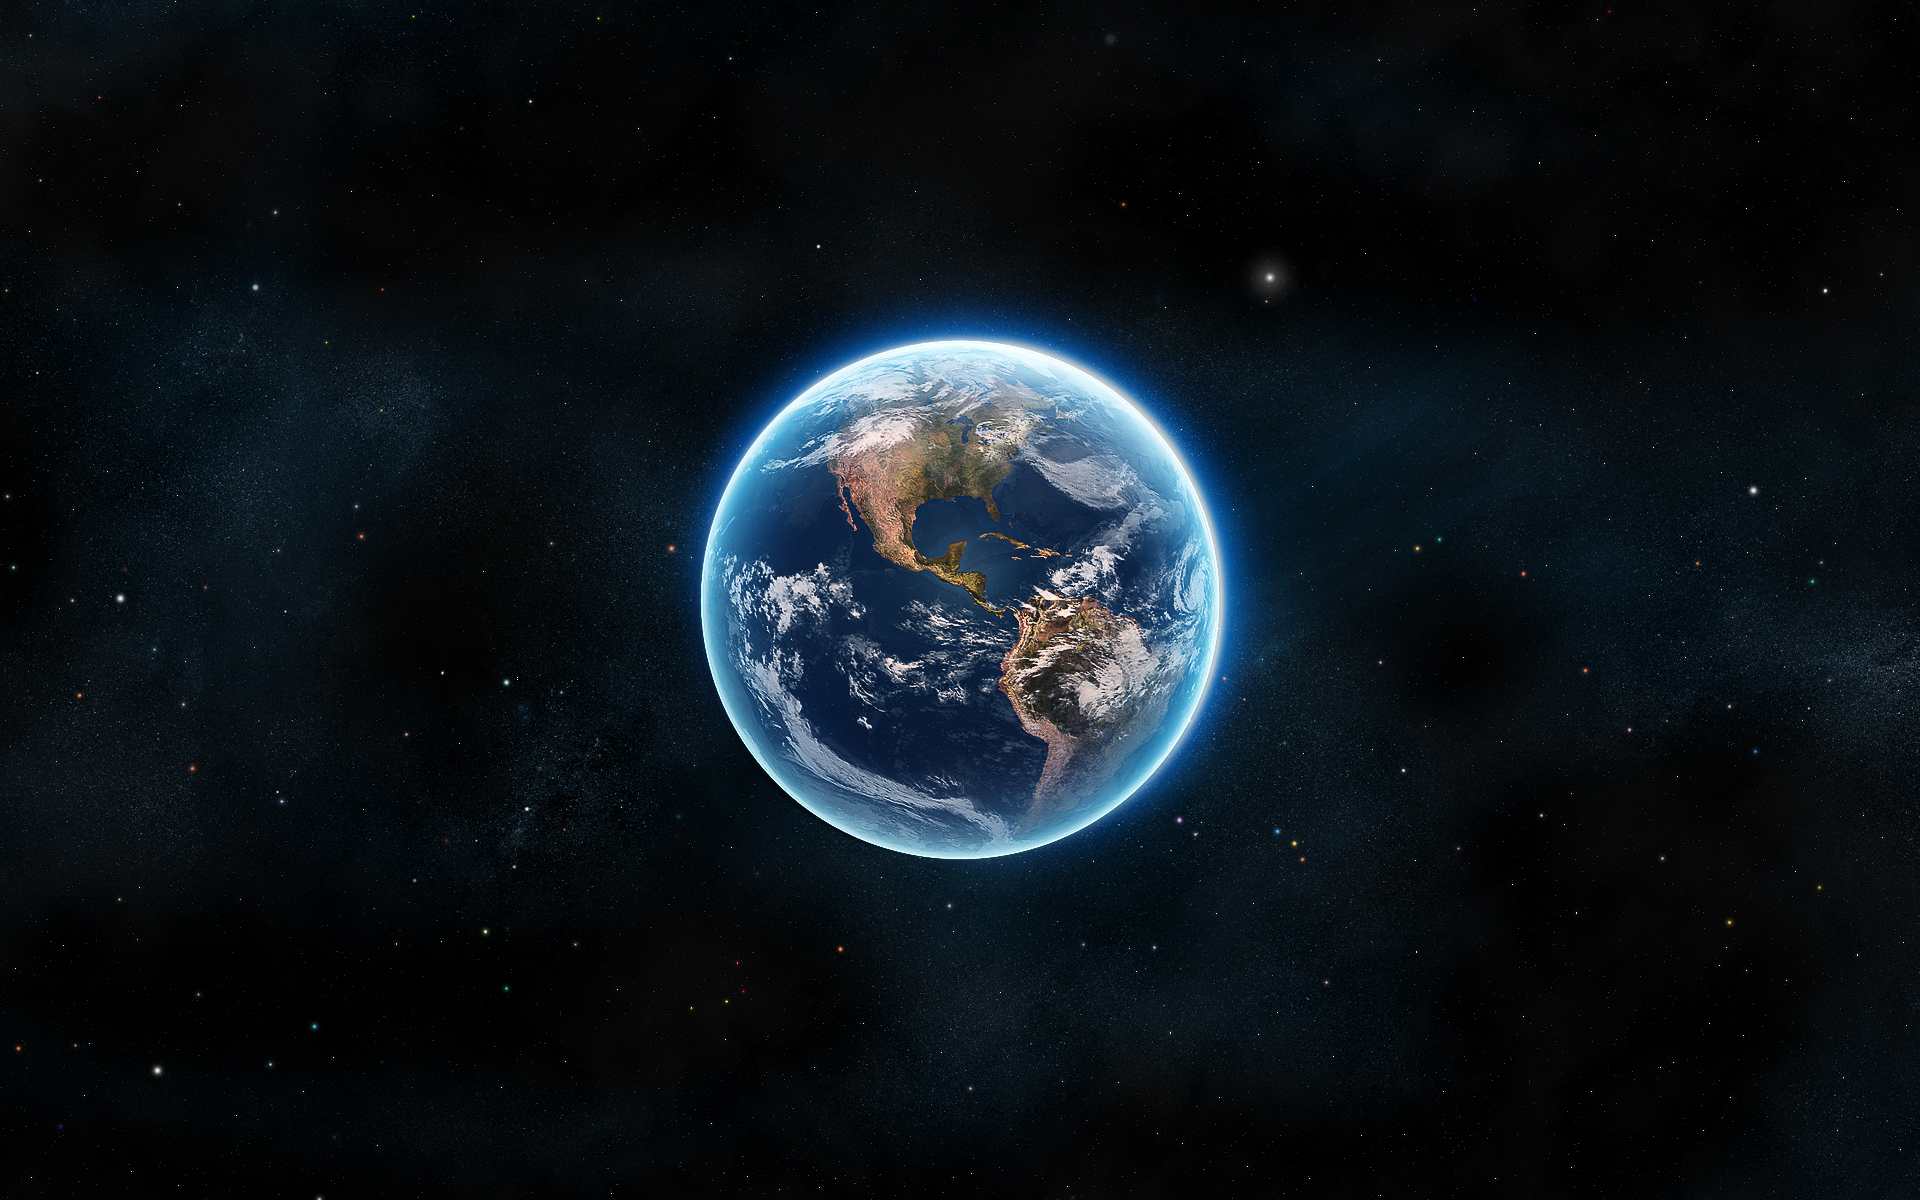 HD Earth Wallpaper Desktop